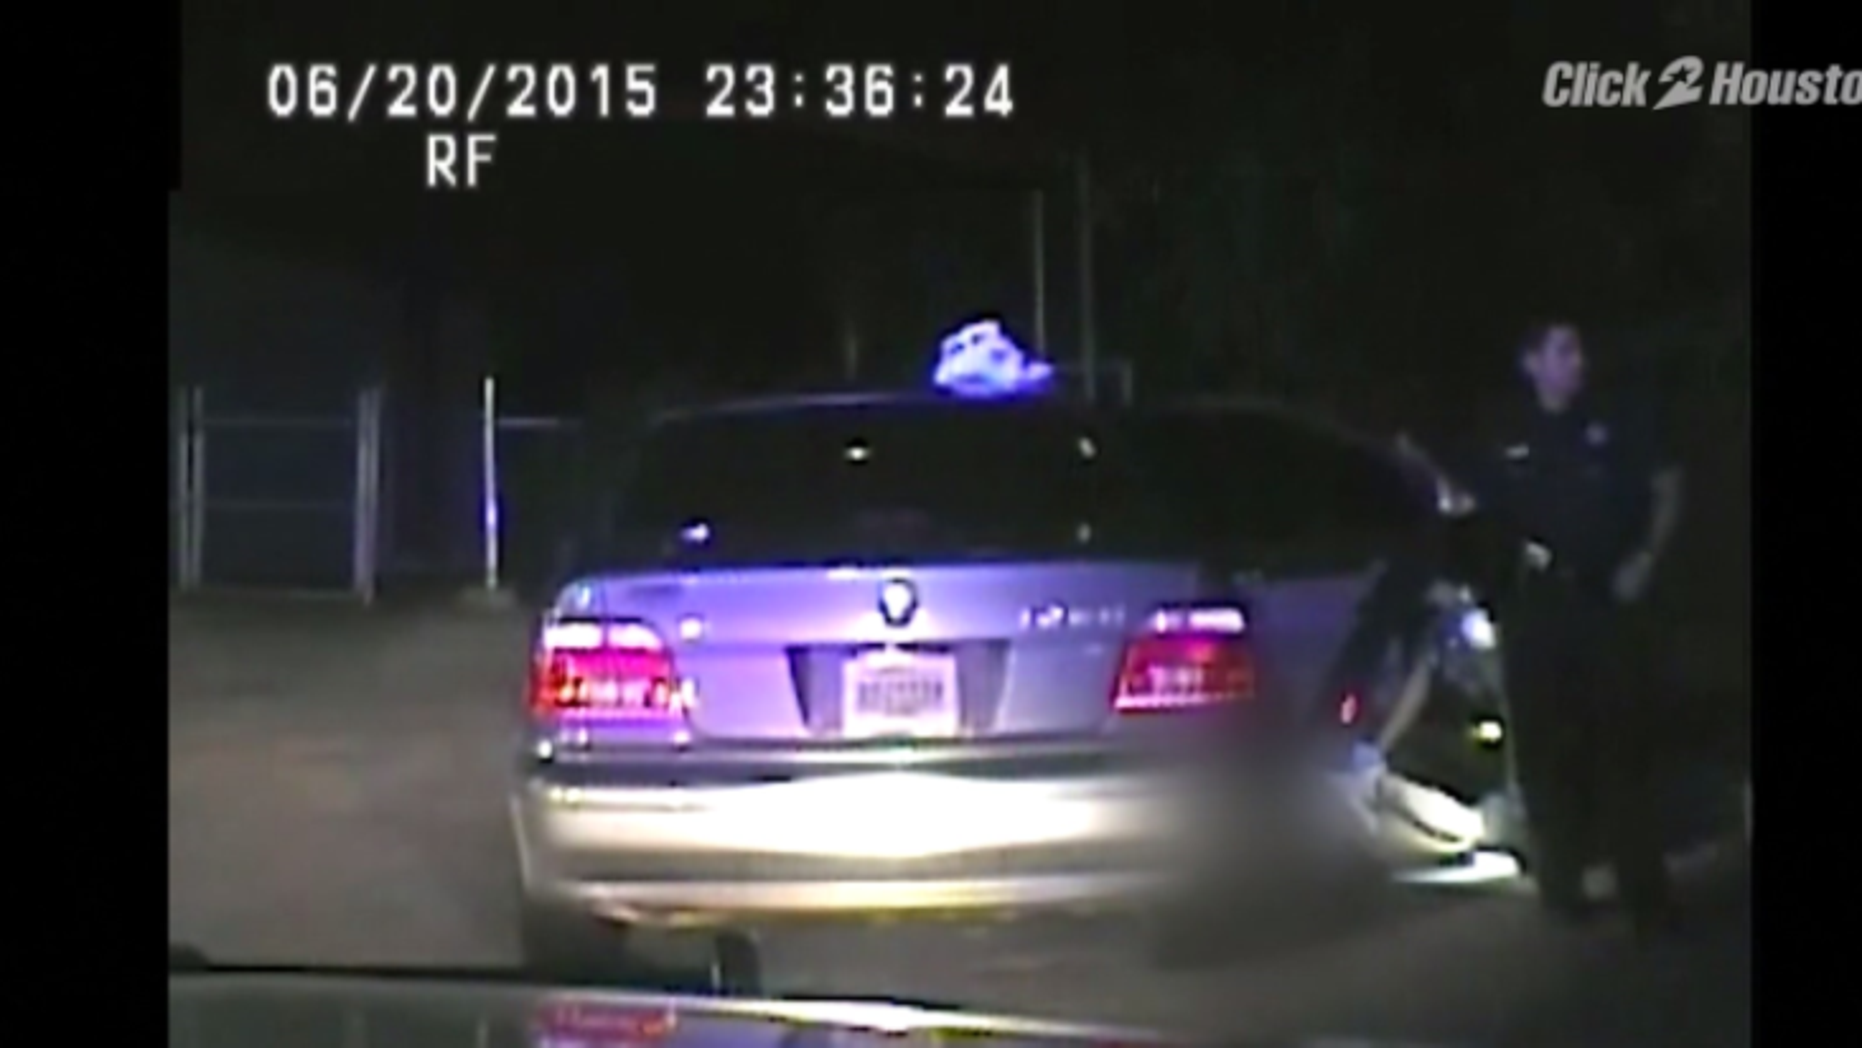 Released dashcam footage allegedly shows two Texas deputies performing a strip search on a woman.